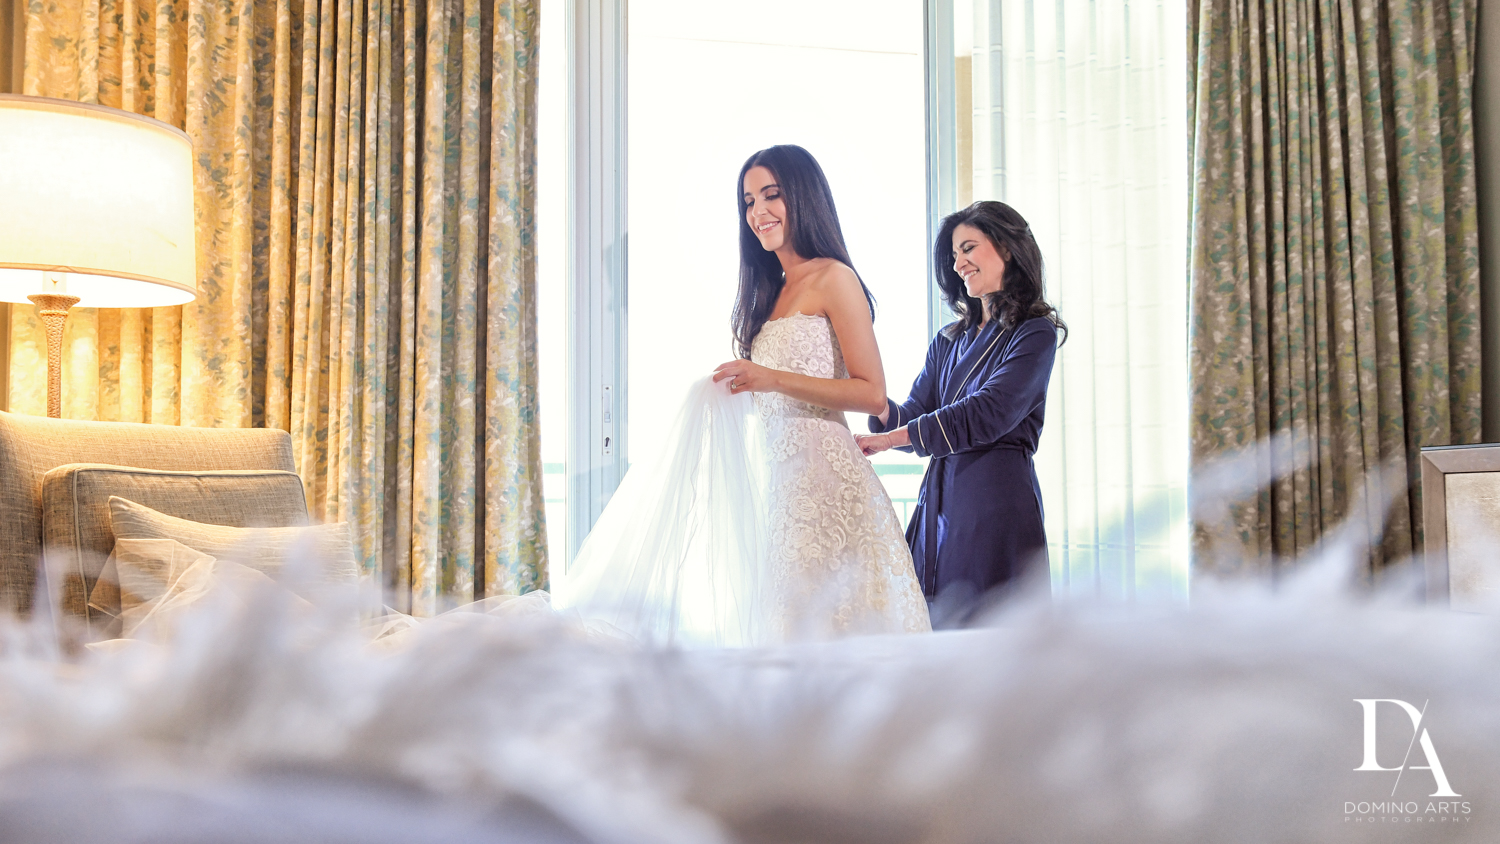 mother of the bride at A Ritz Carlton Wedding in Key Biscayne by Domino Arts Photography